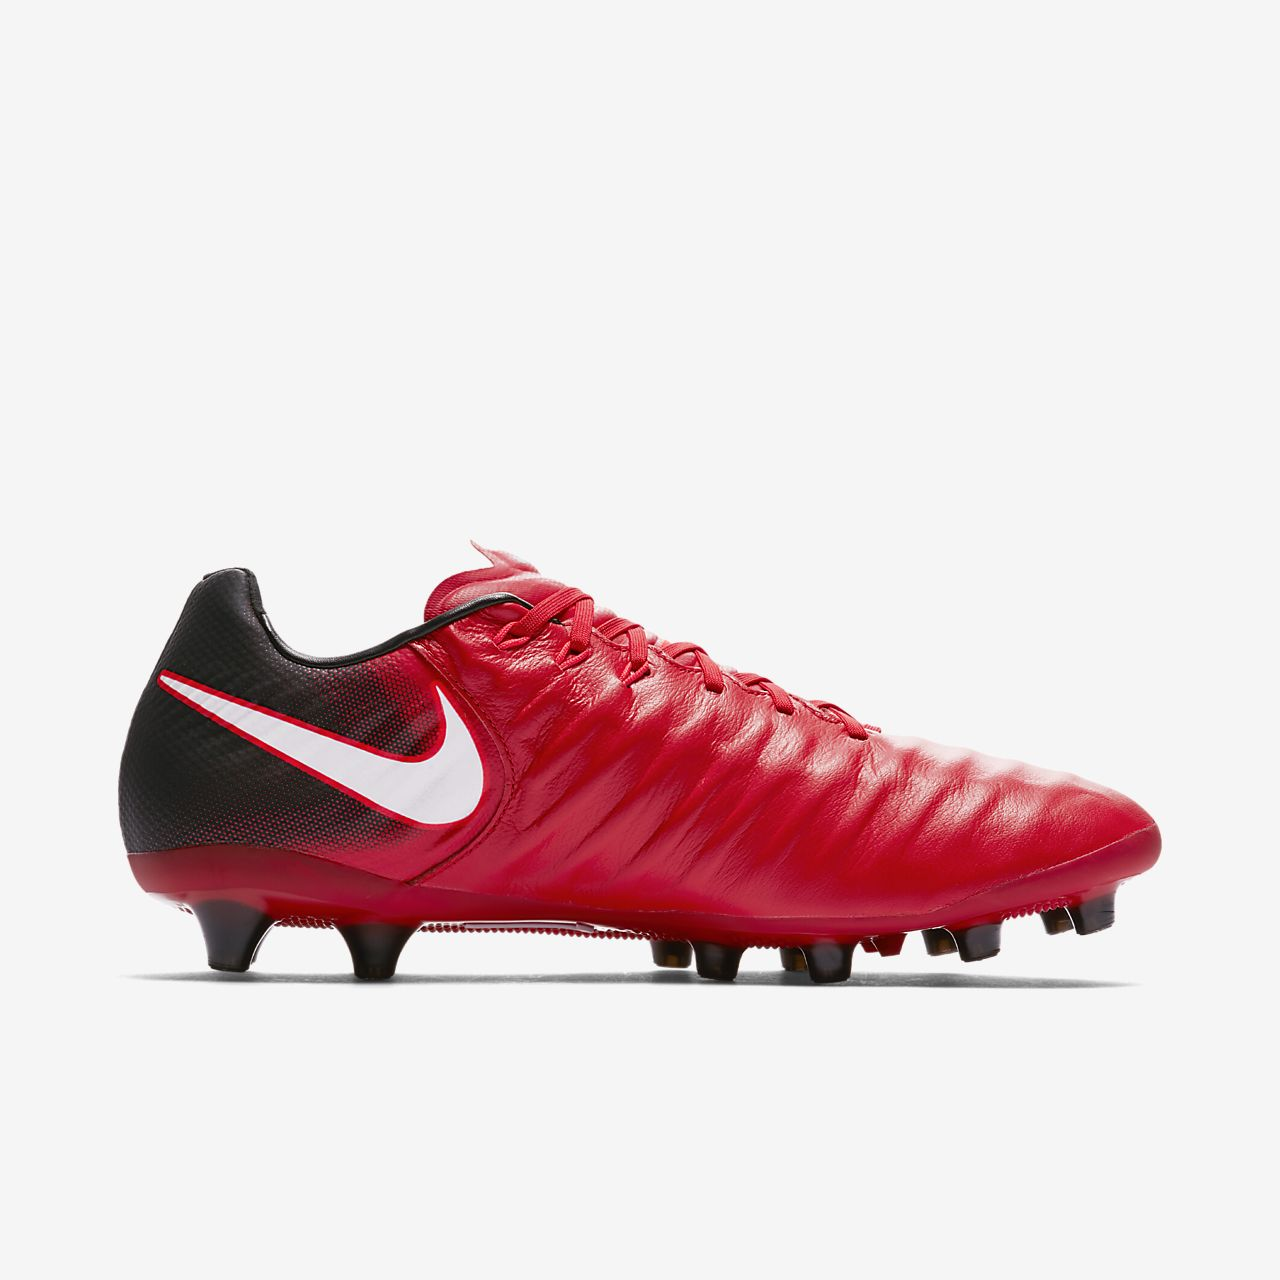 ... Nike Tiempo Legacy III AG-PRO Artificial-Grass Football Boot